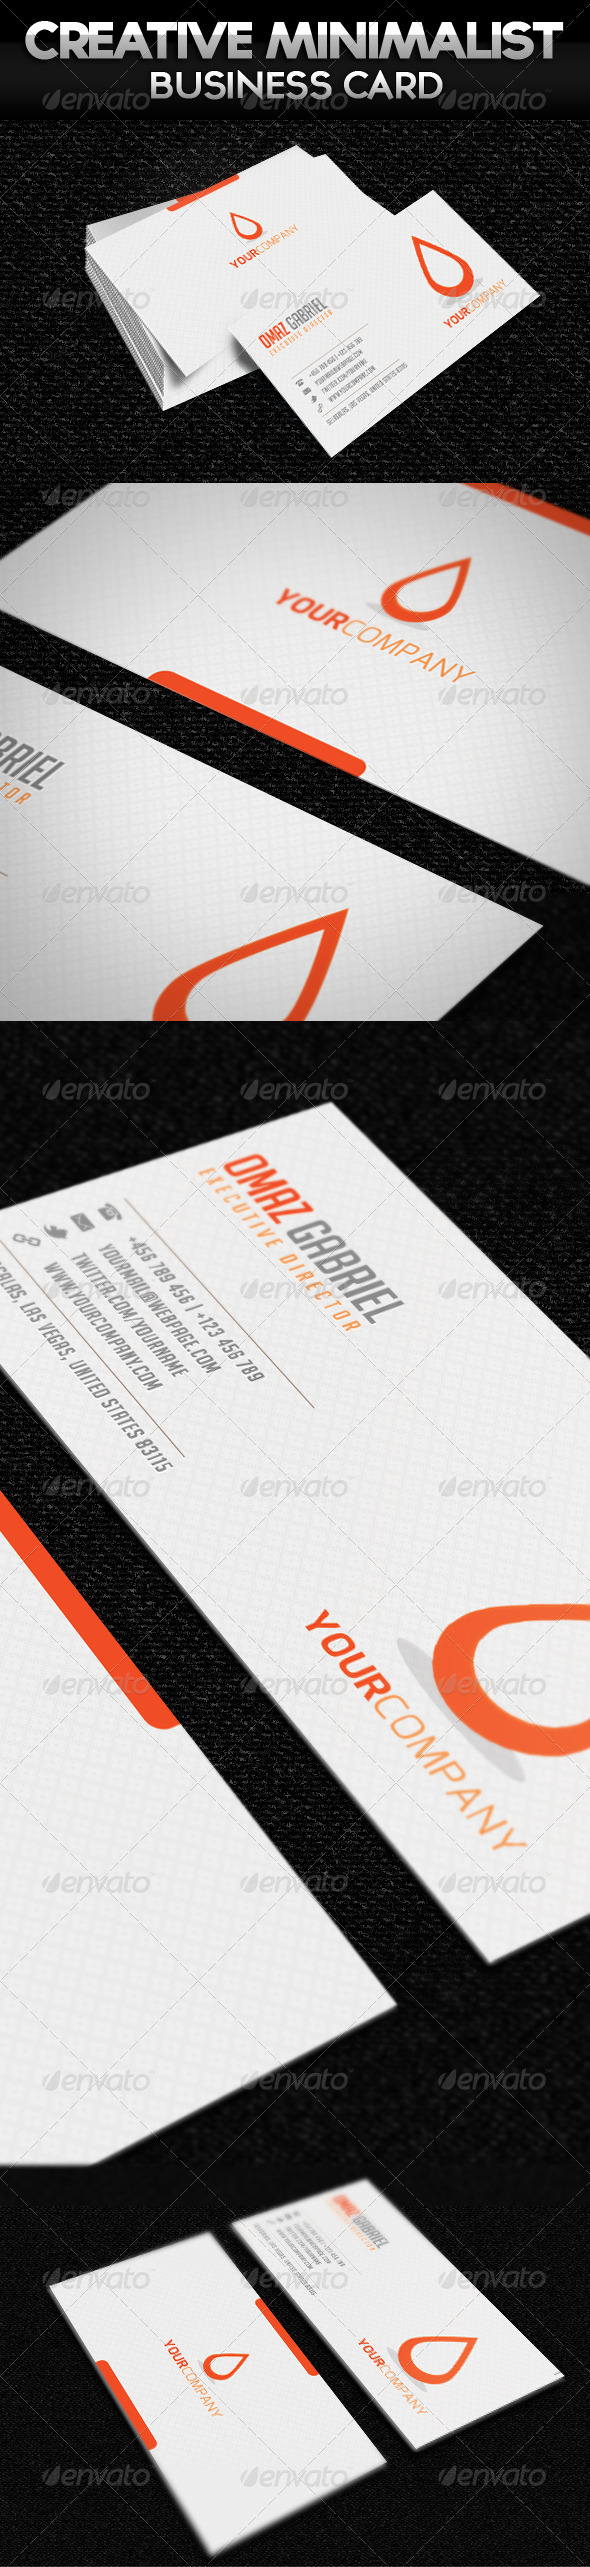 Creative Minimalist Business Card - Business Cards Print Templates